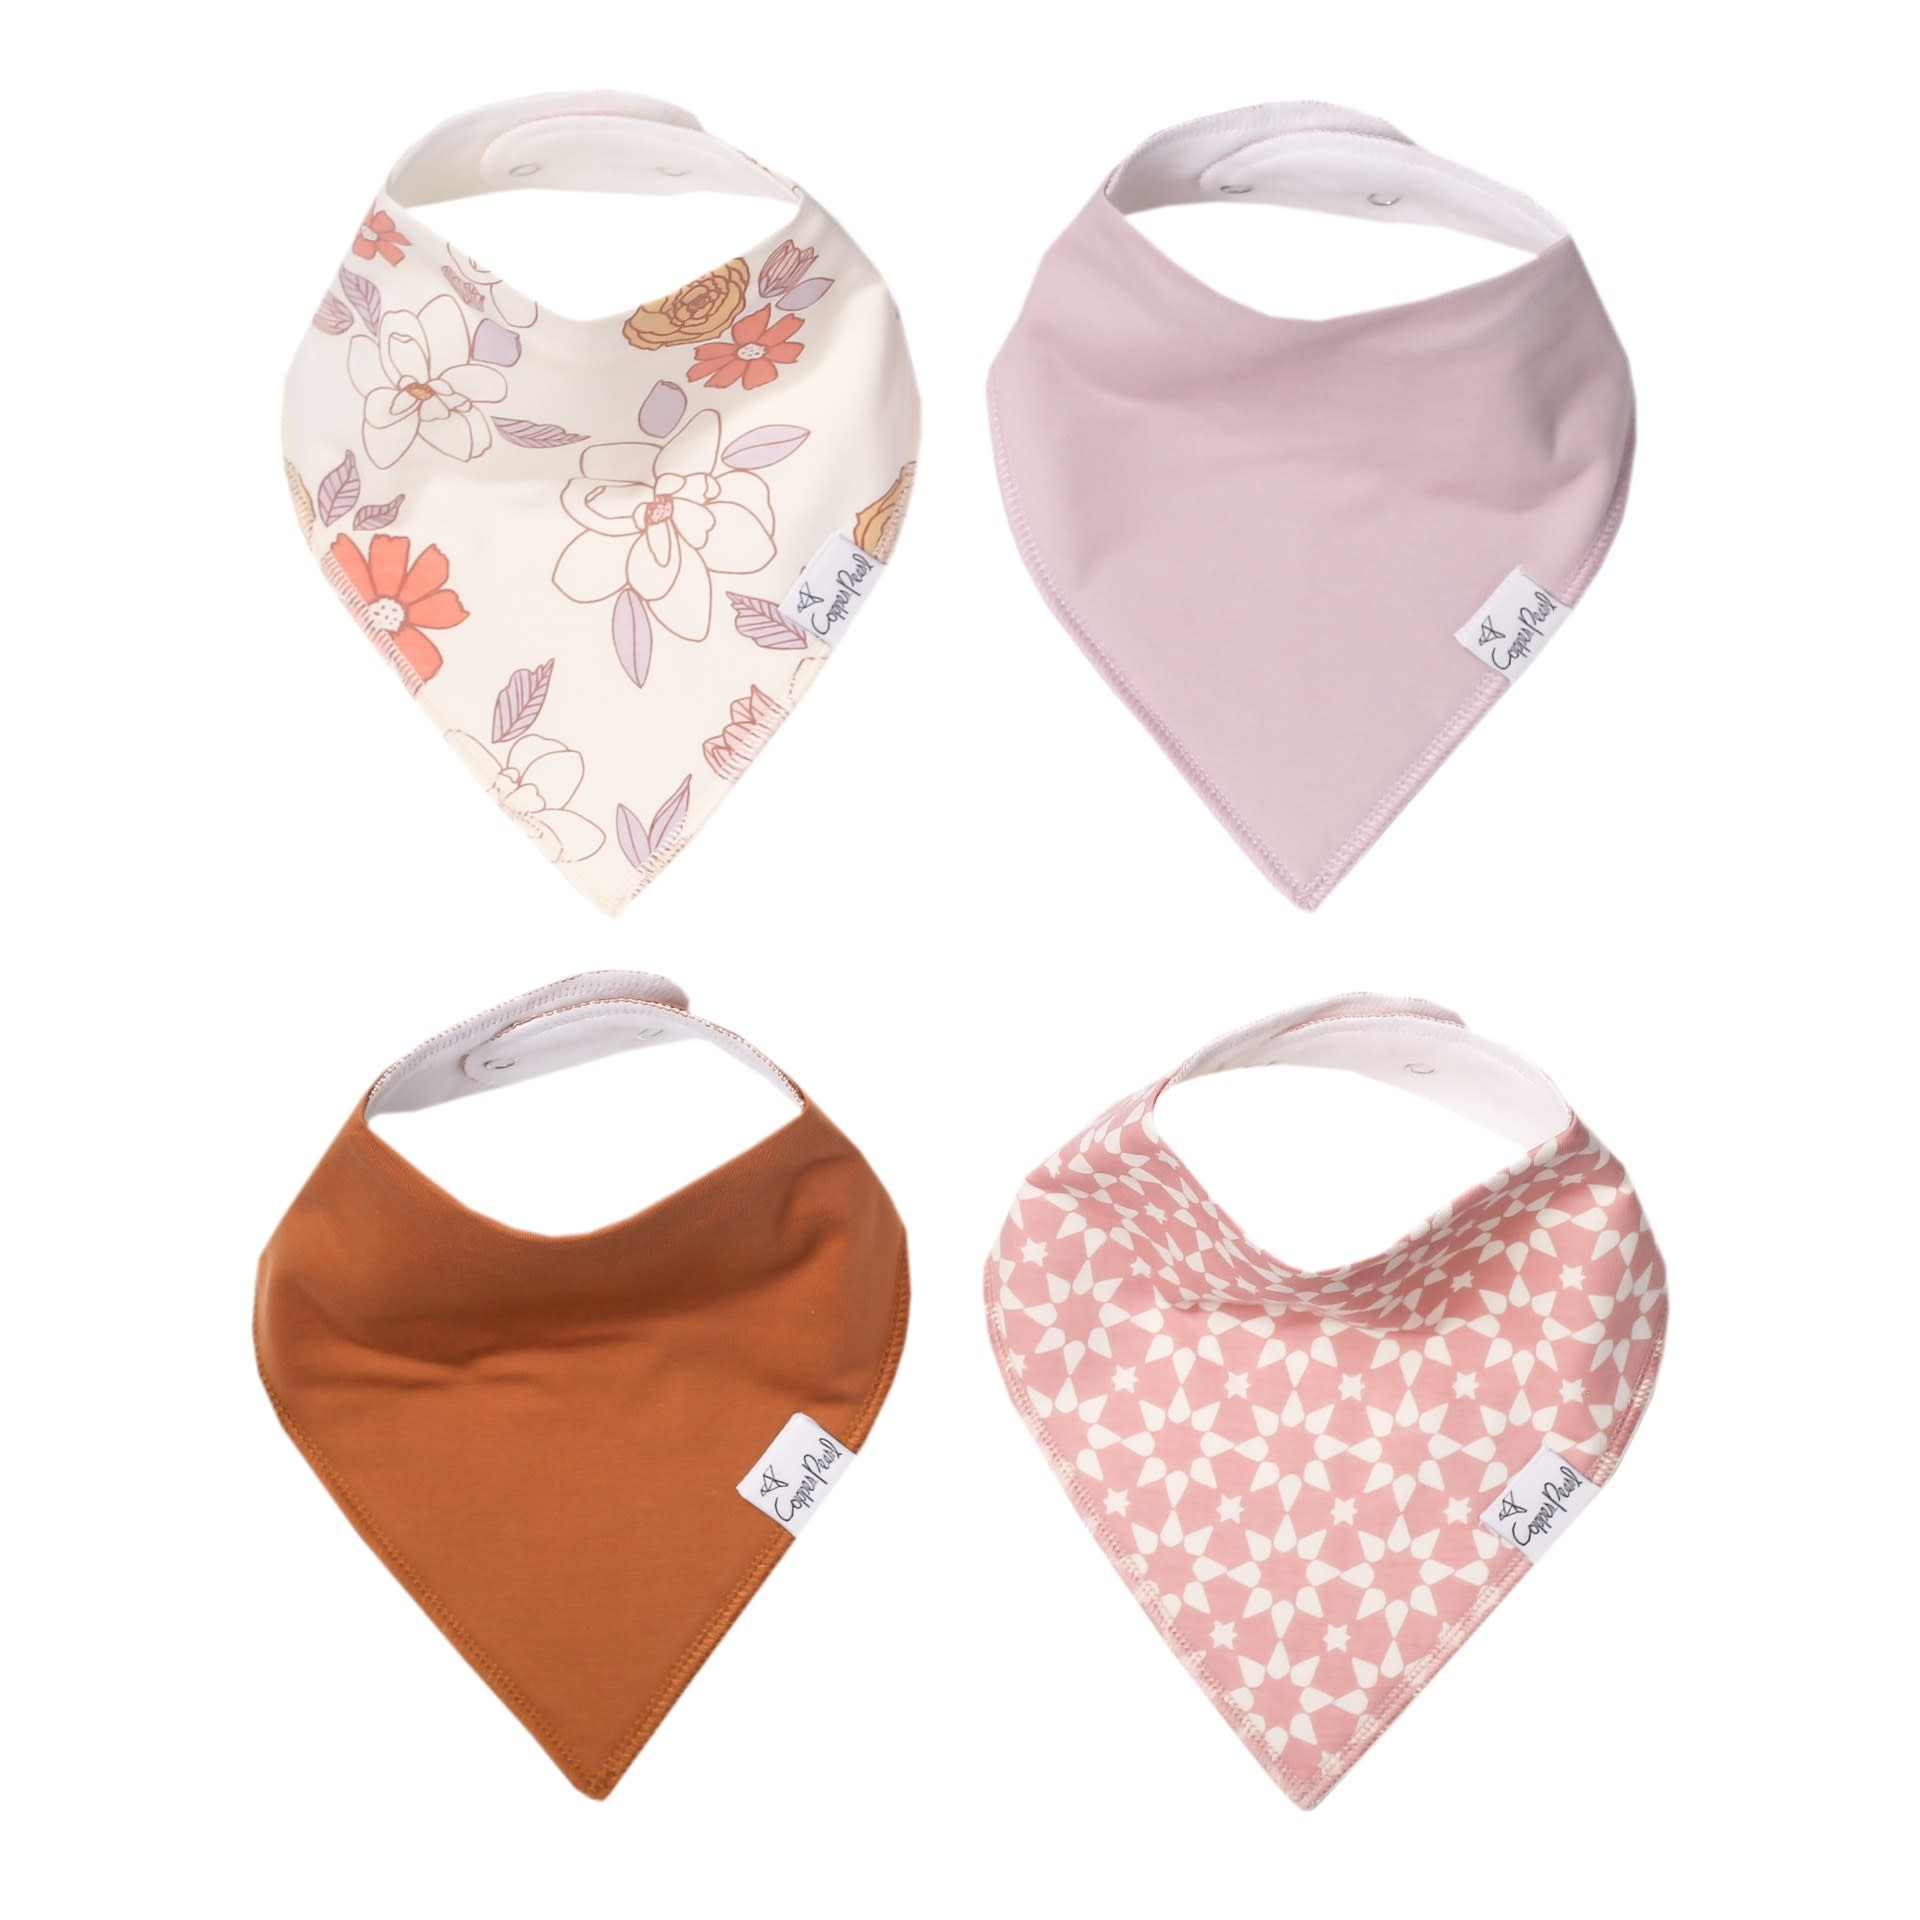 Copper Pearl Bibs - Ferra Set - 4 pack